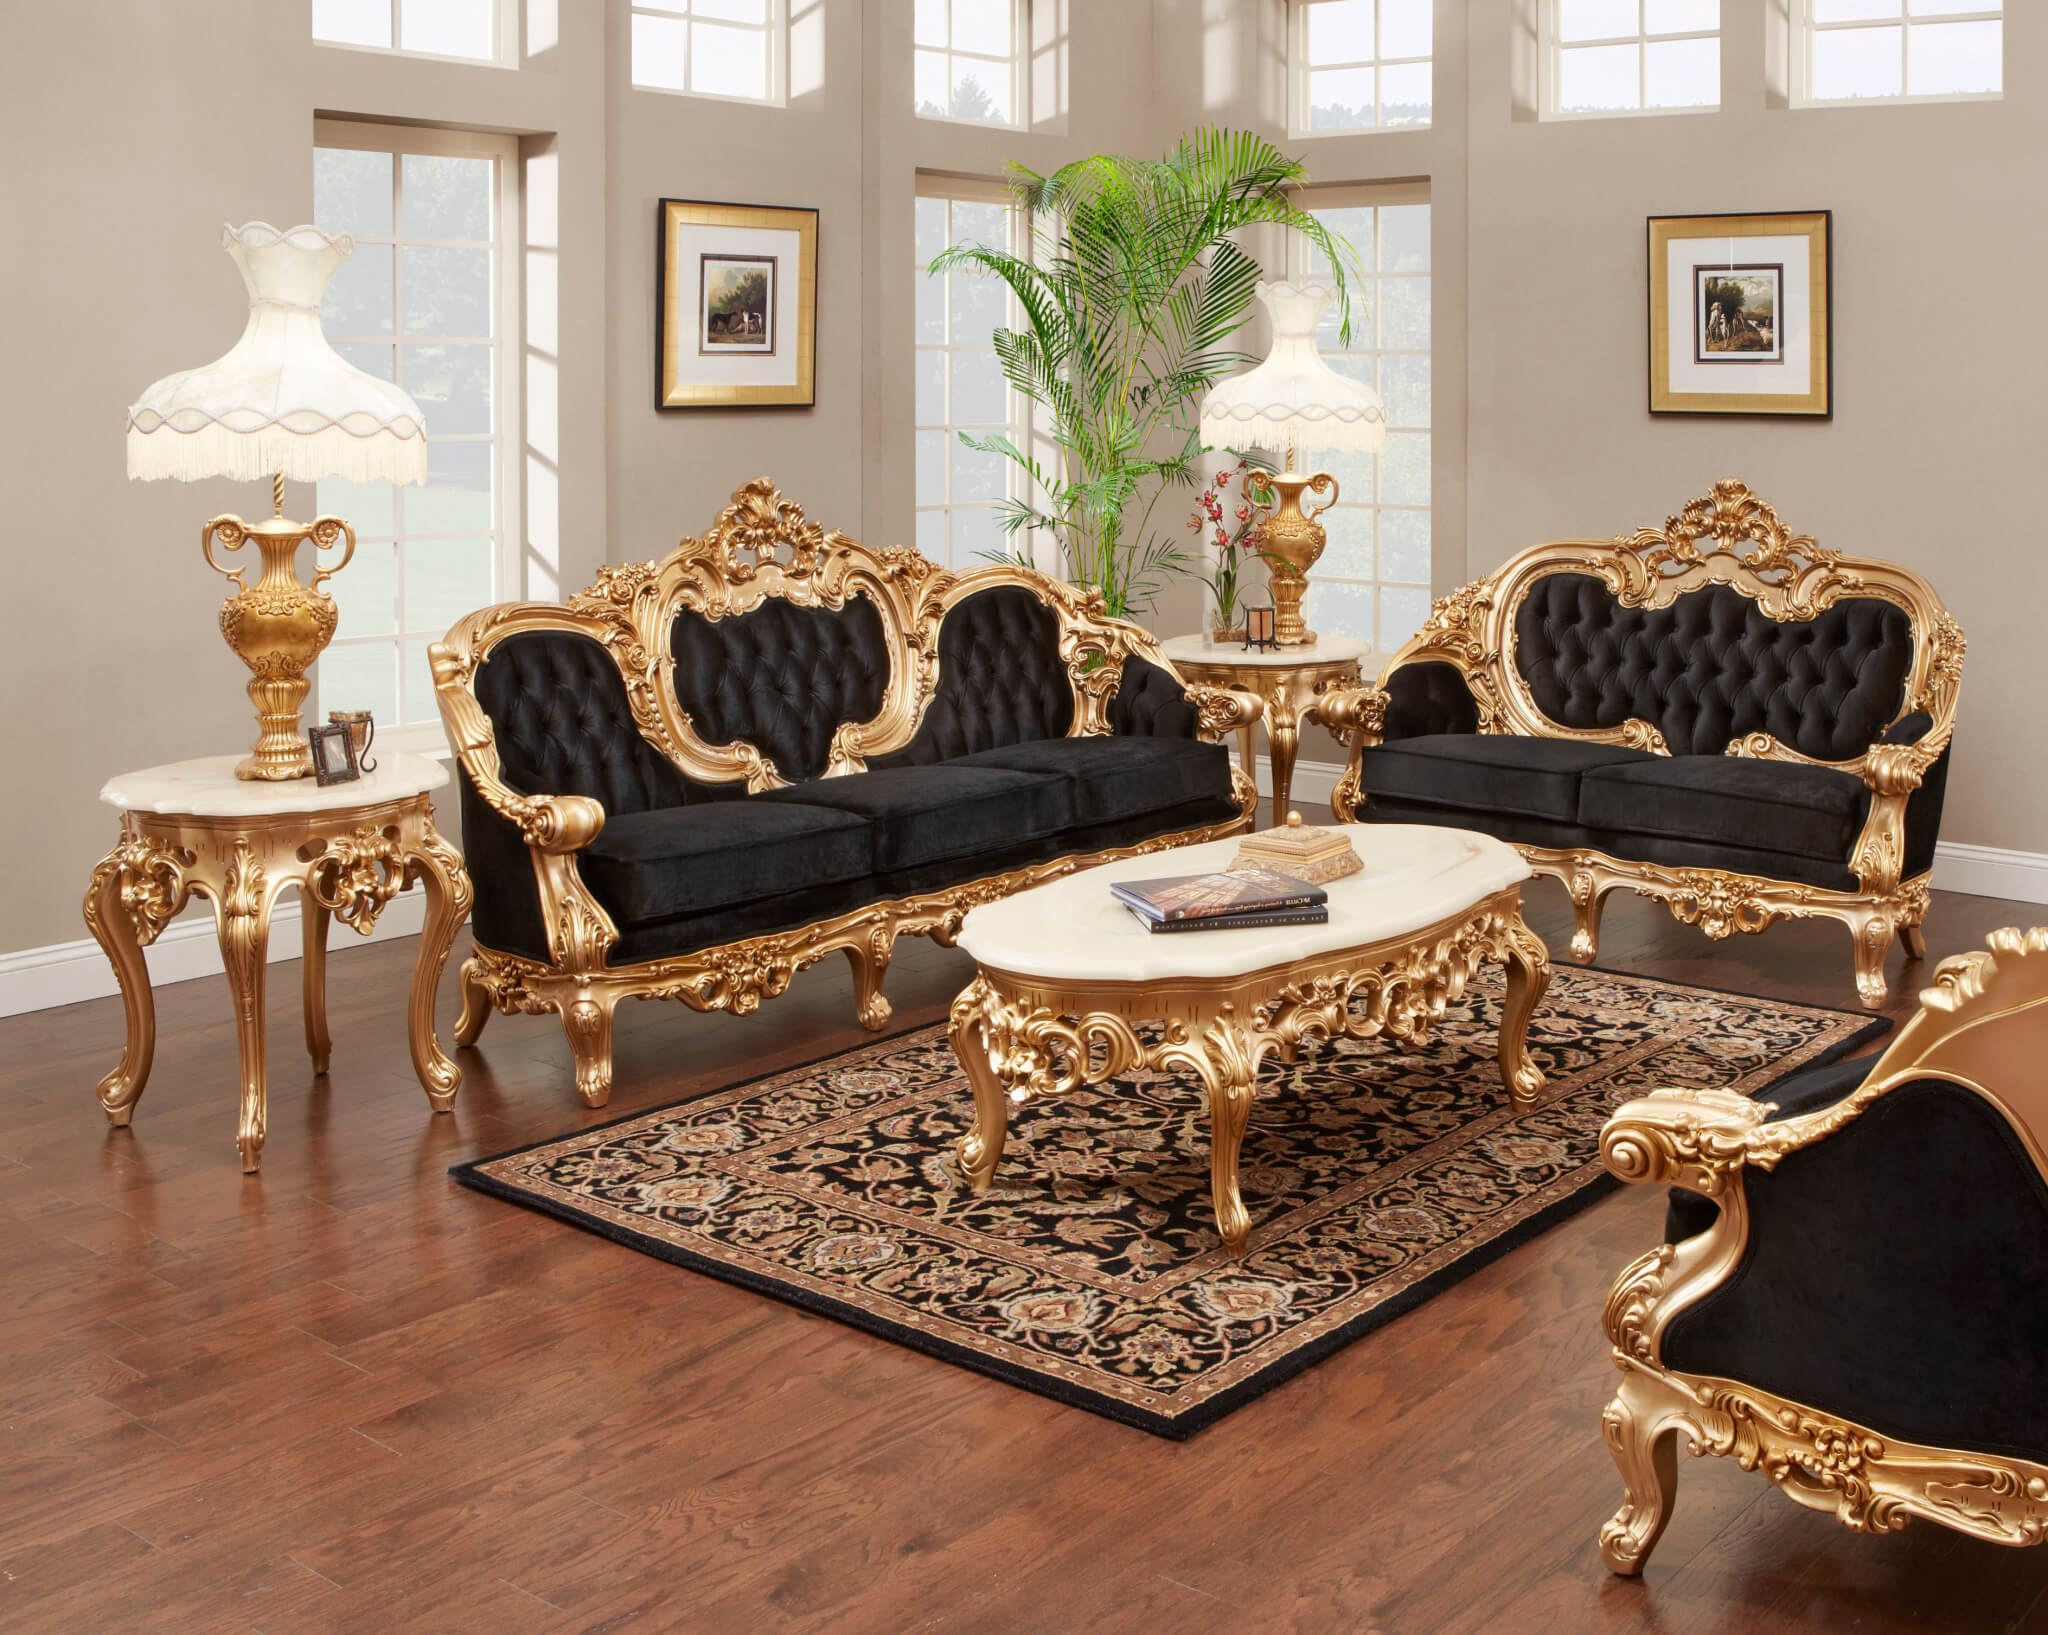 French Gold Leaf Living Room Set with 10 Smart Concepts of How to Craft Living Room Set For Sale Cheap